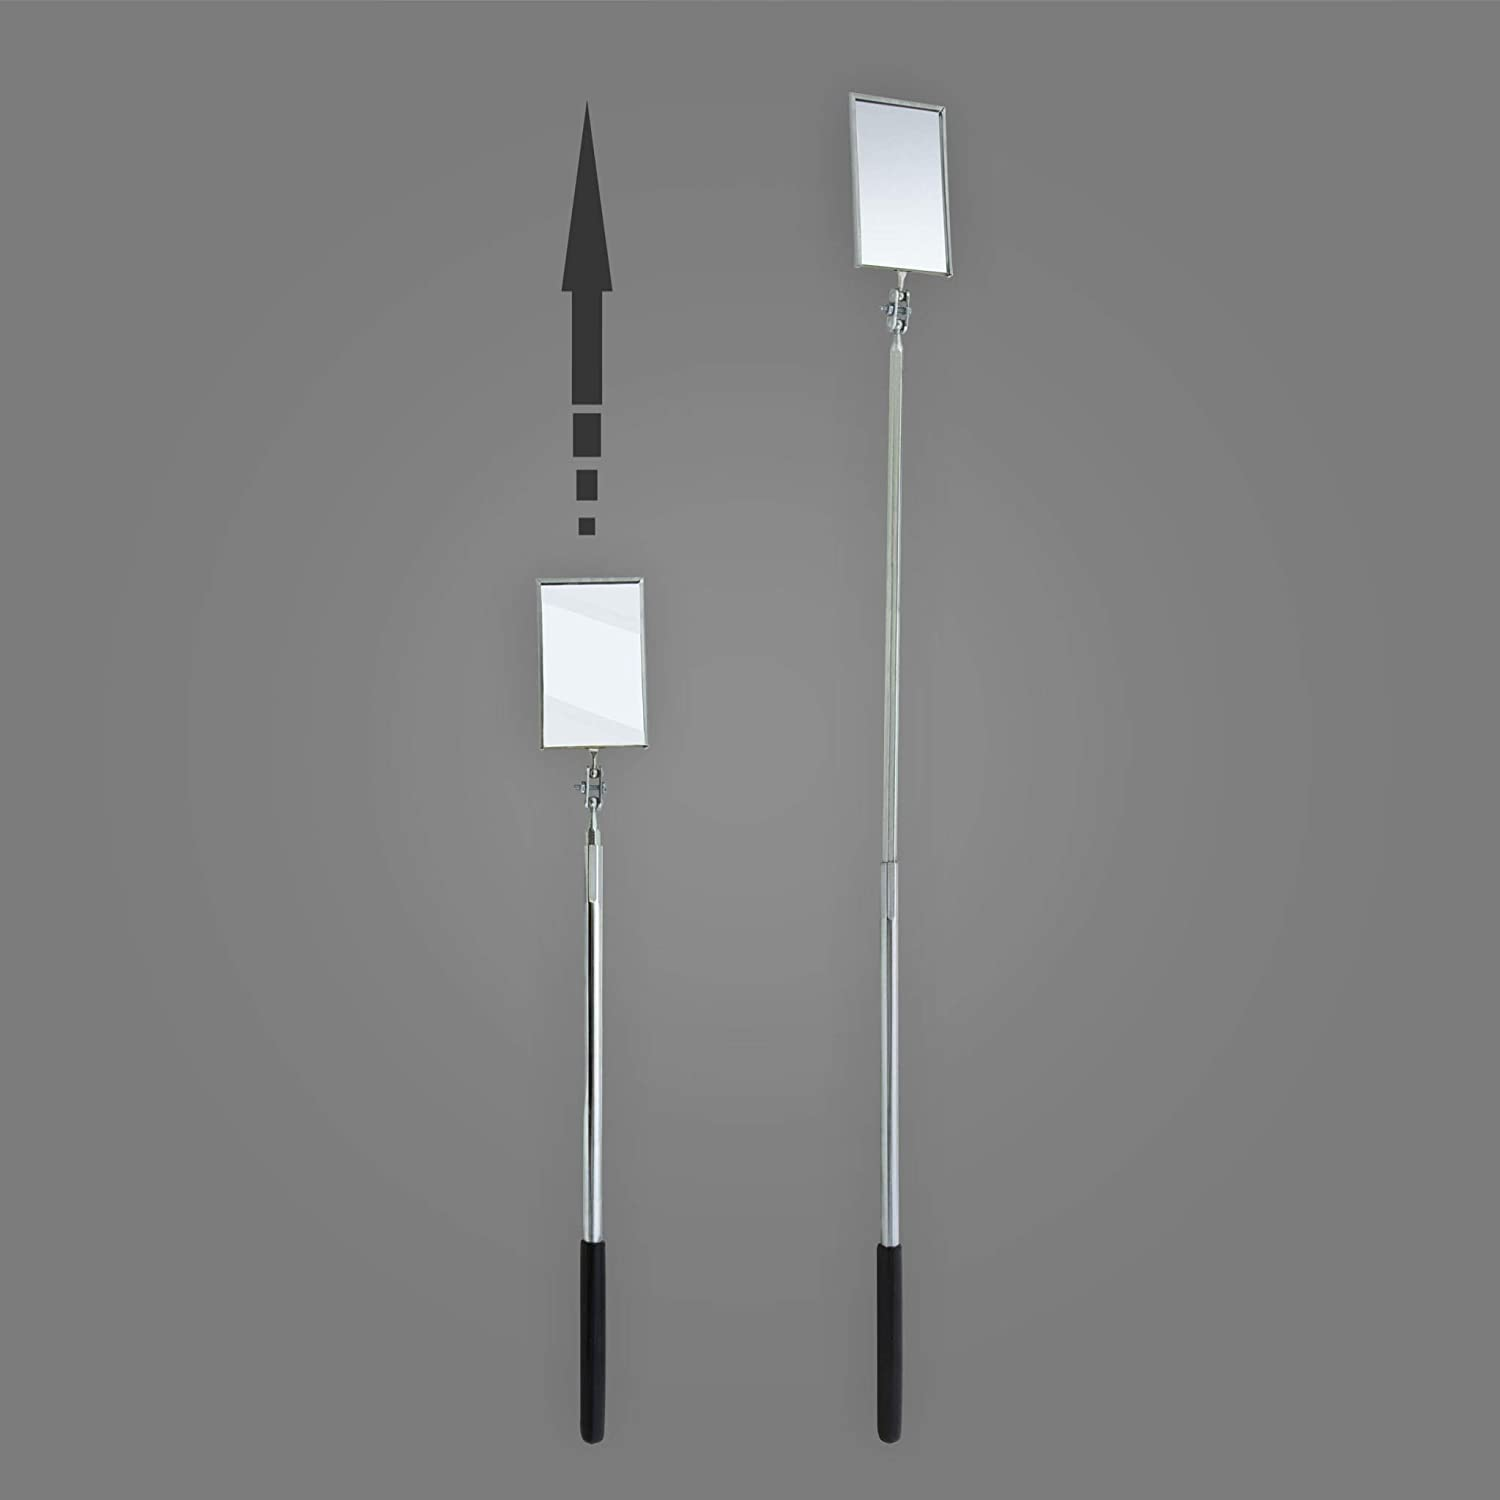 1-3//8 Diameter Round 6-1//2 to 35 Length Ullman Devices HTE-LT2 LED Lighted Telescoping Inspection Mirror